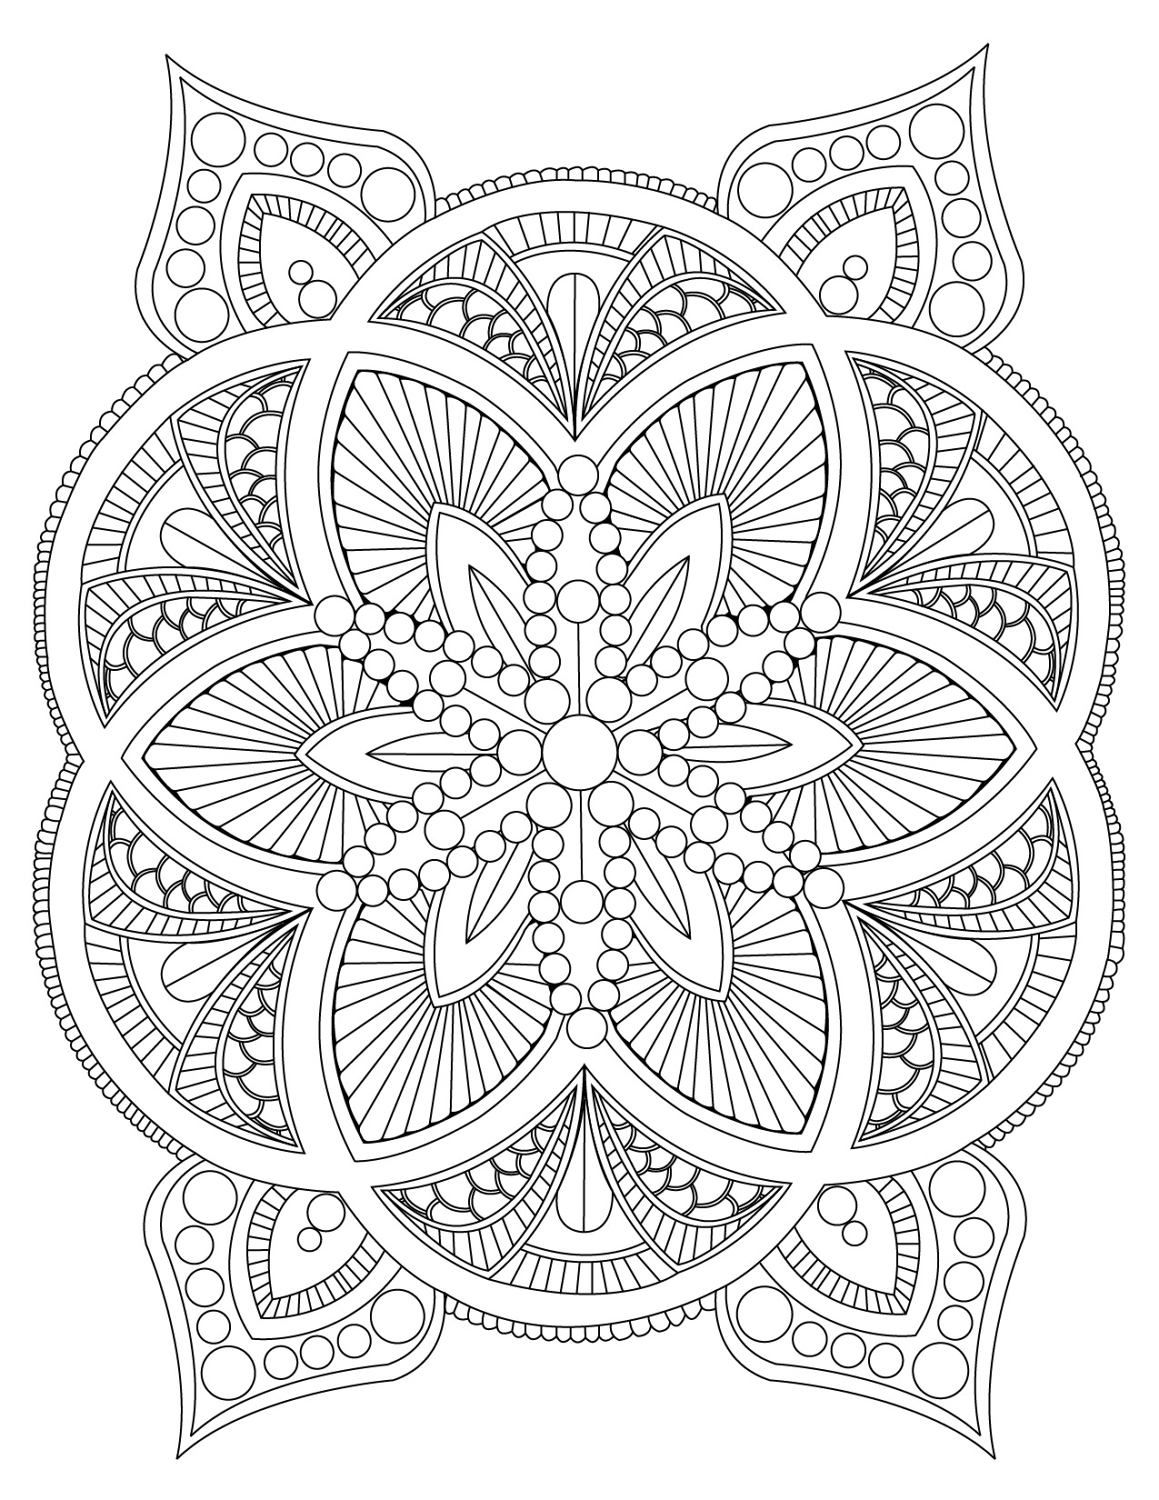 Abstract Mandala Coloring Page for Adults Digital Download